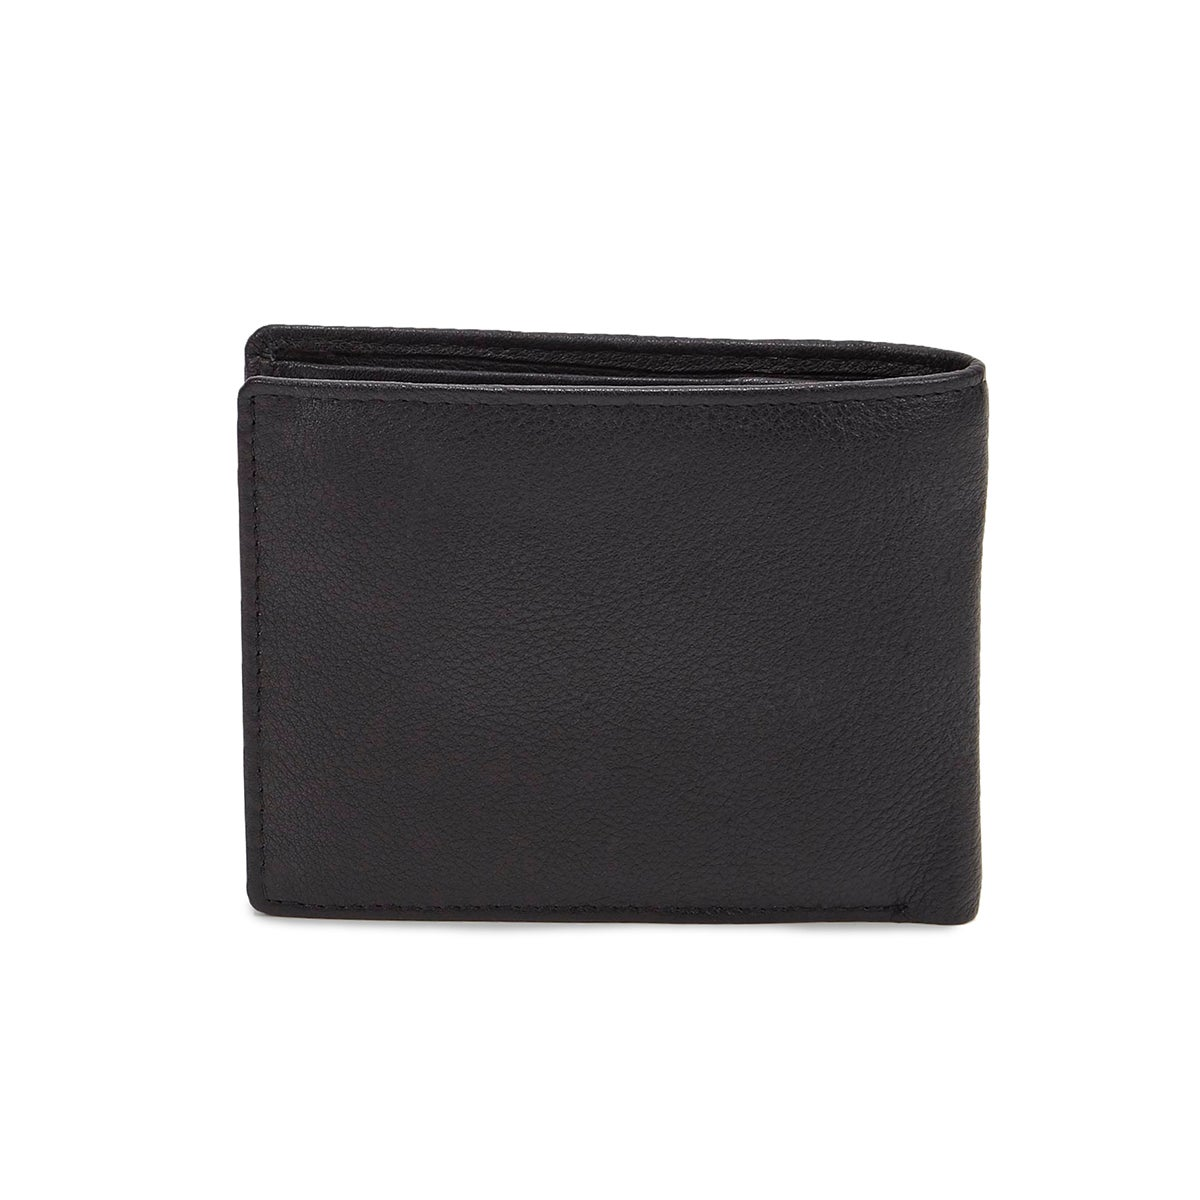 Mns Roots73 RT22752 blk folding wallet